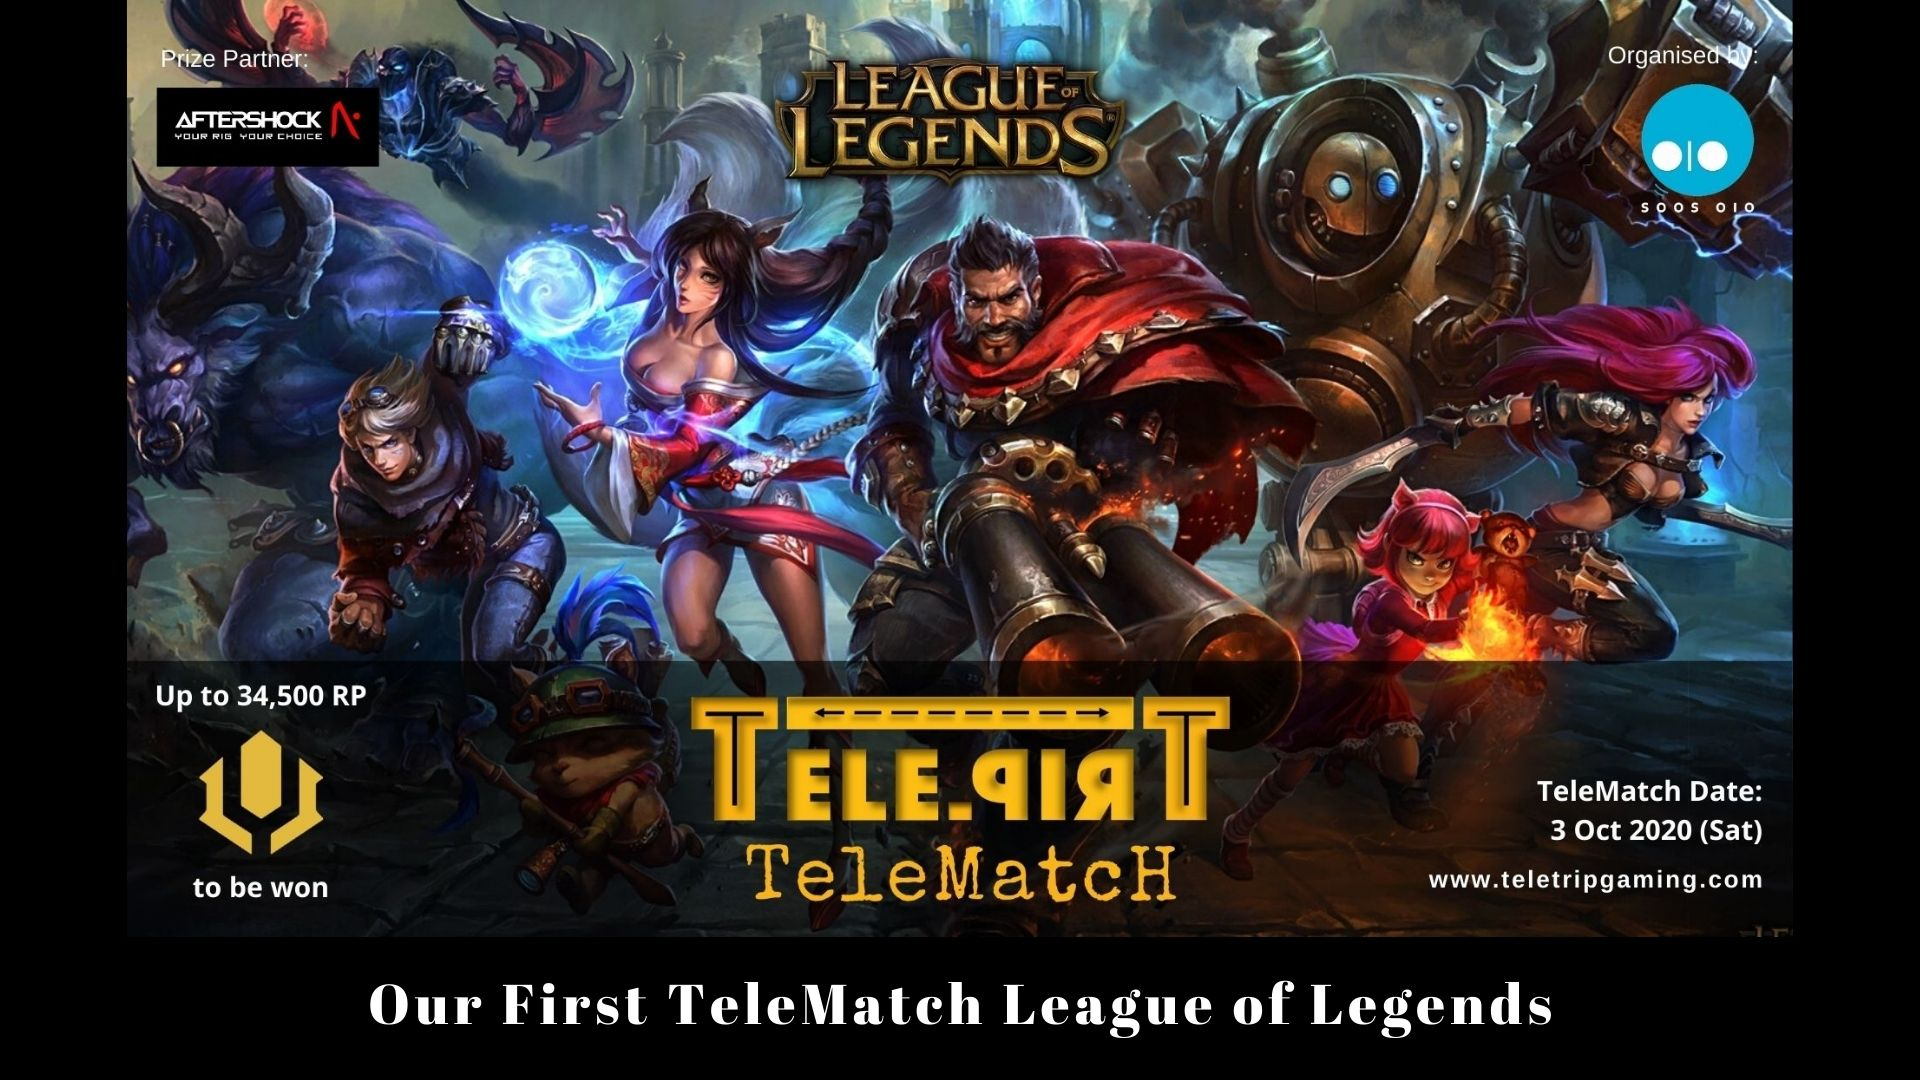 Our First TeleMatch League of Legends